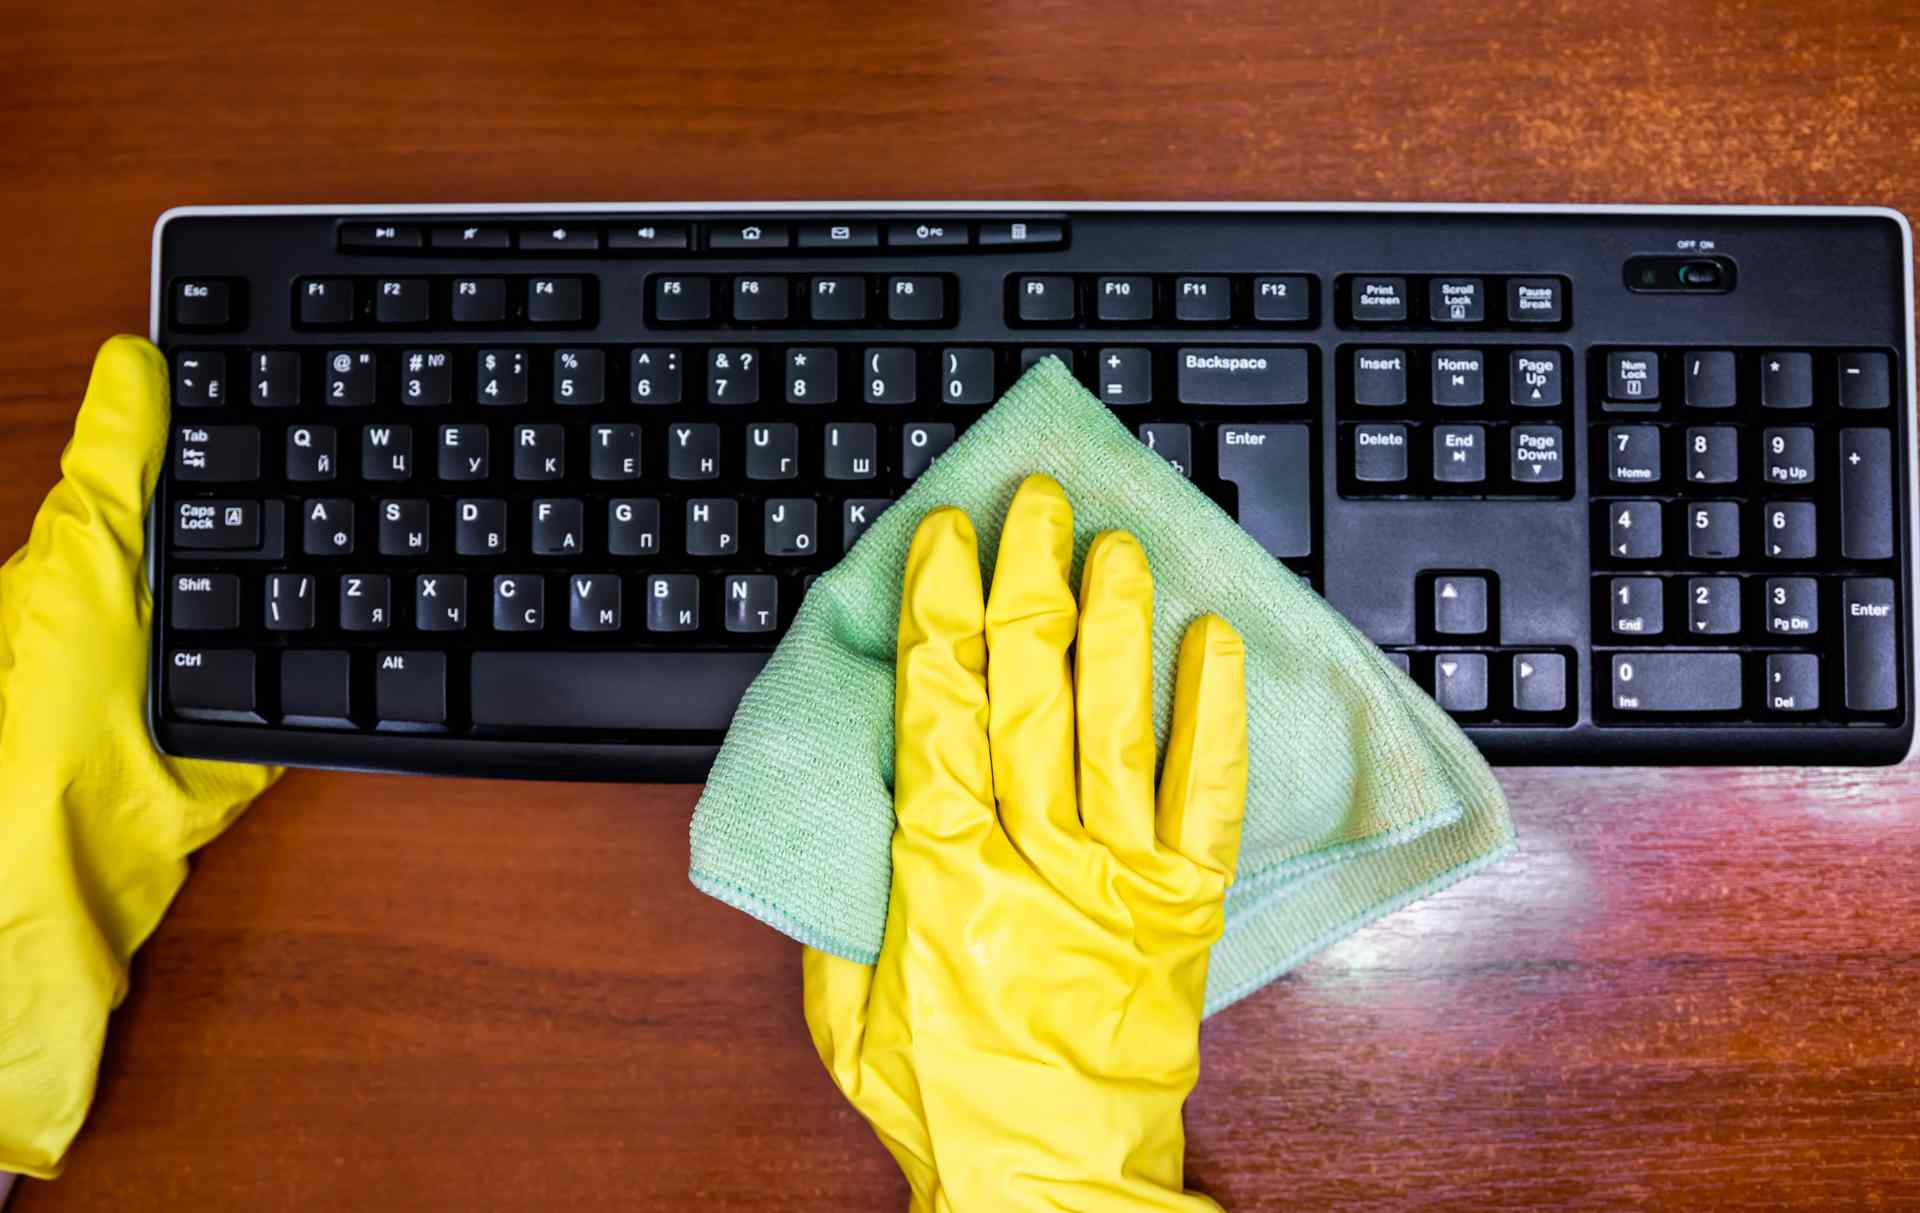 A woman wearing yellow gloves wiping down a black mechanical keyboard.